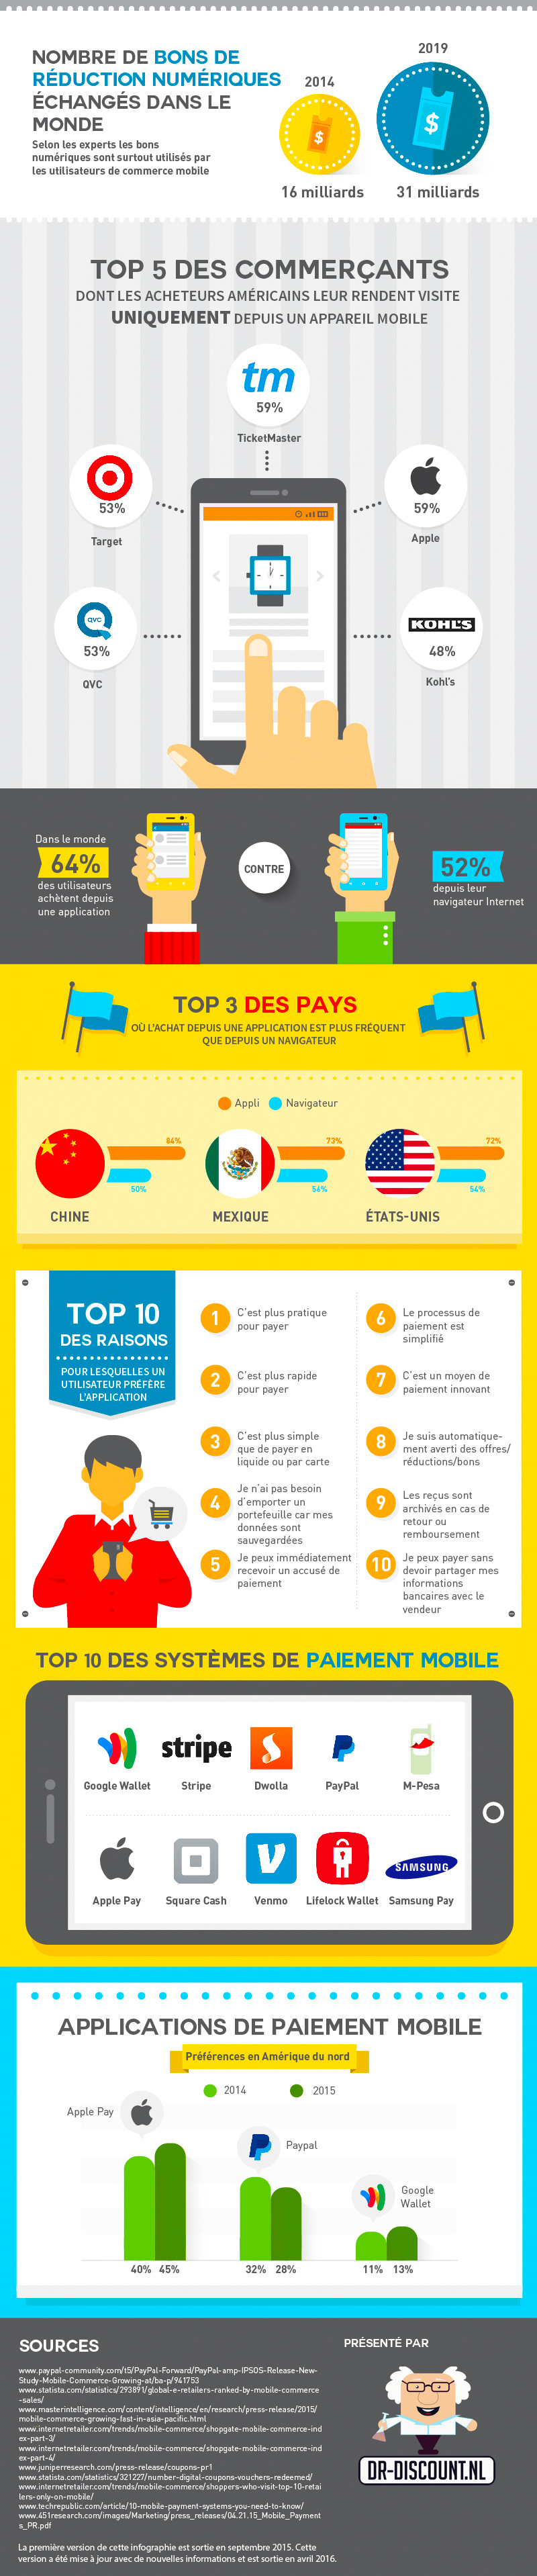 mcommerce-infographie-3